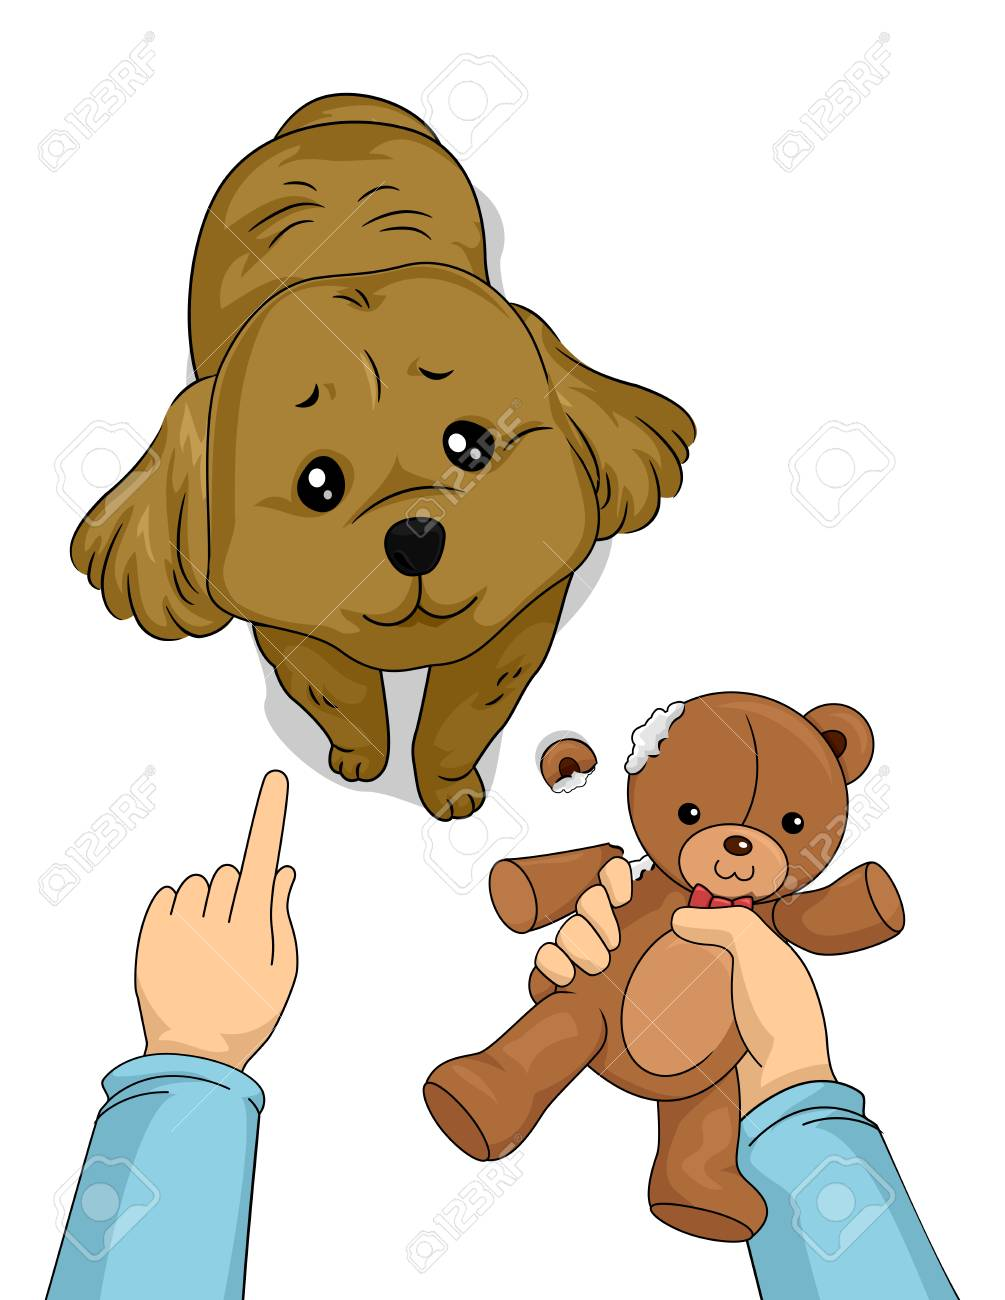 Beautiful Bear Brown Adorable Dog - 88489762-cute-animal-illustration-featuring-an-adorable-dog-pulling-the-puppy-dog-eyes-while-being-scolded-fo  Snapshot_7717100  .jpg